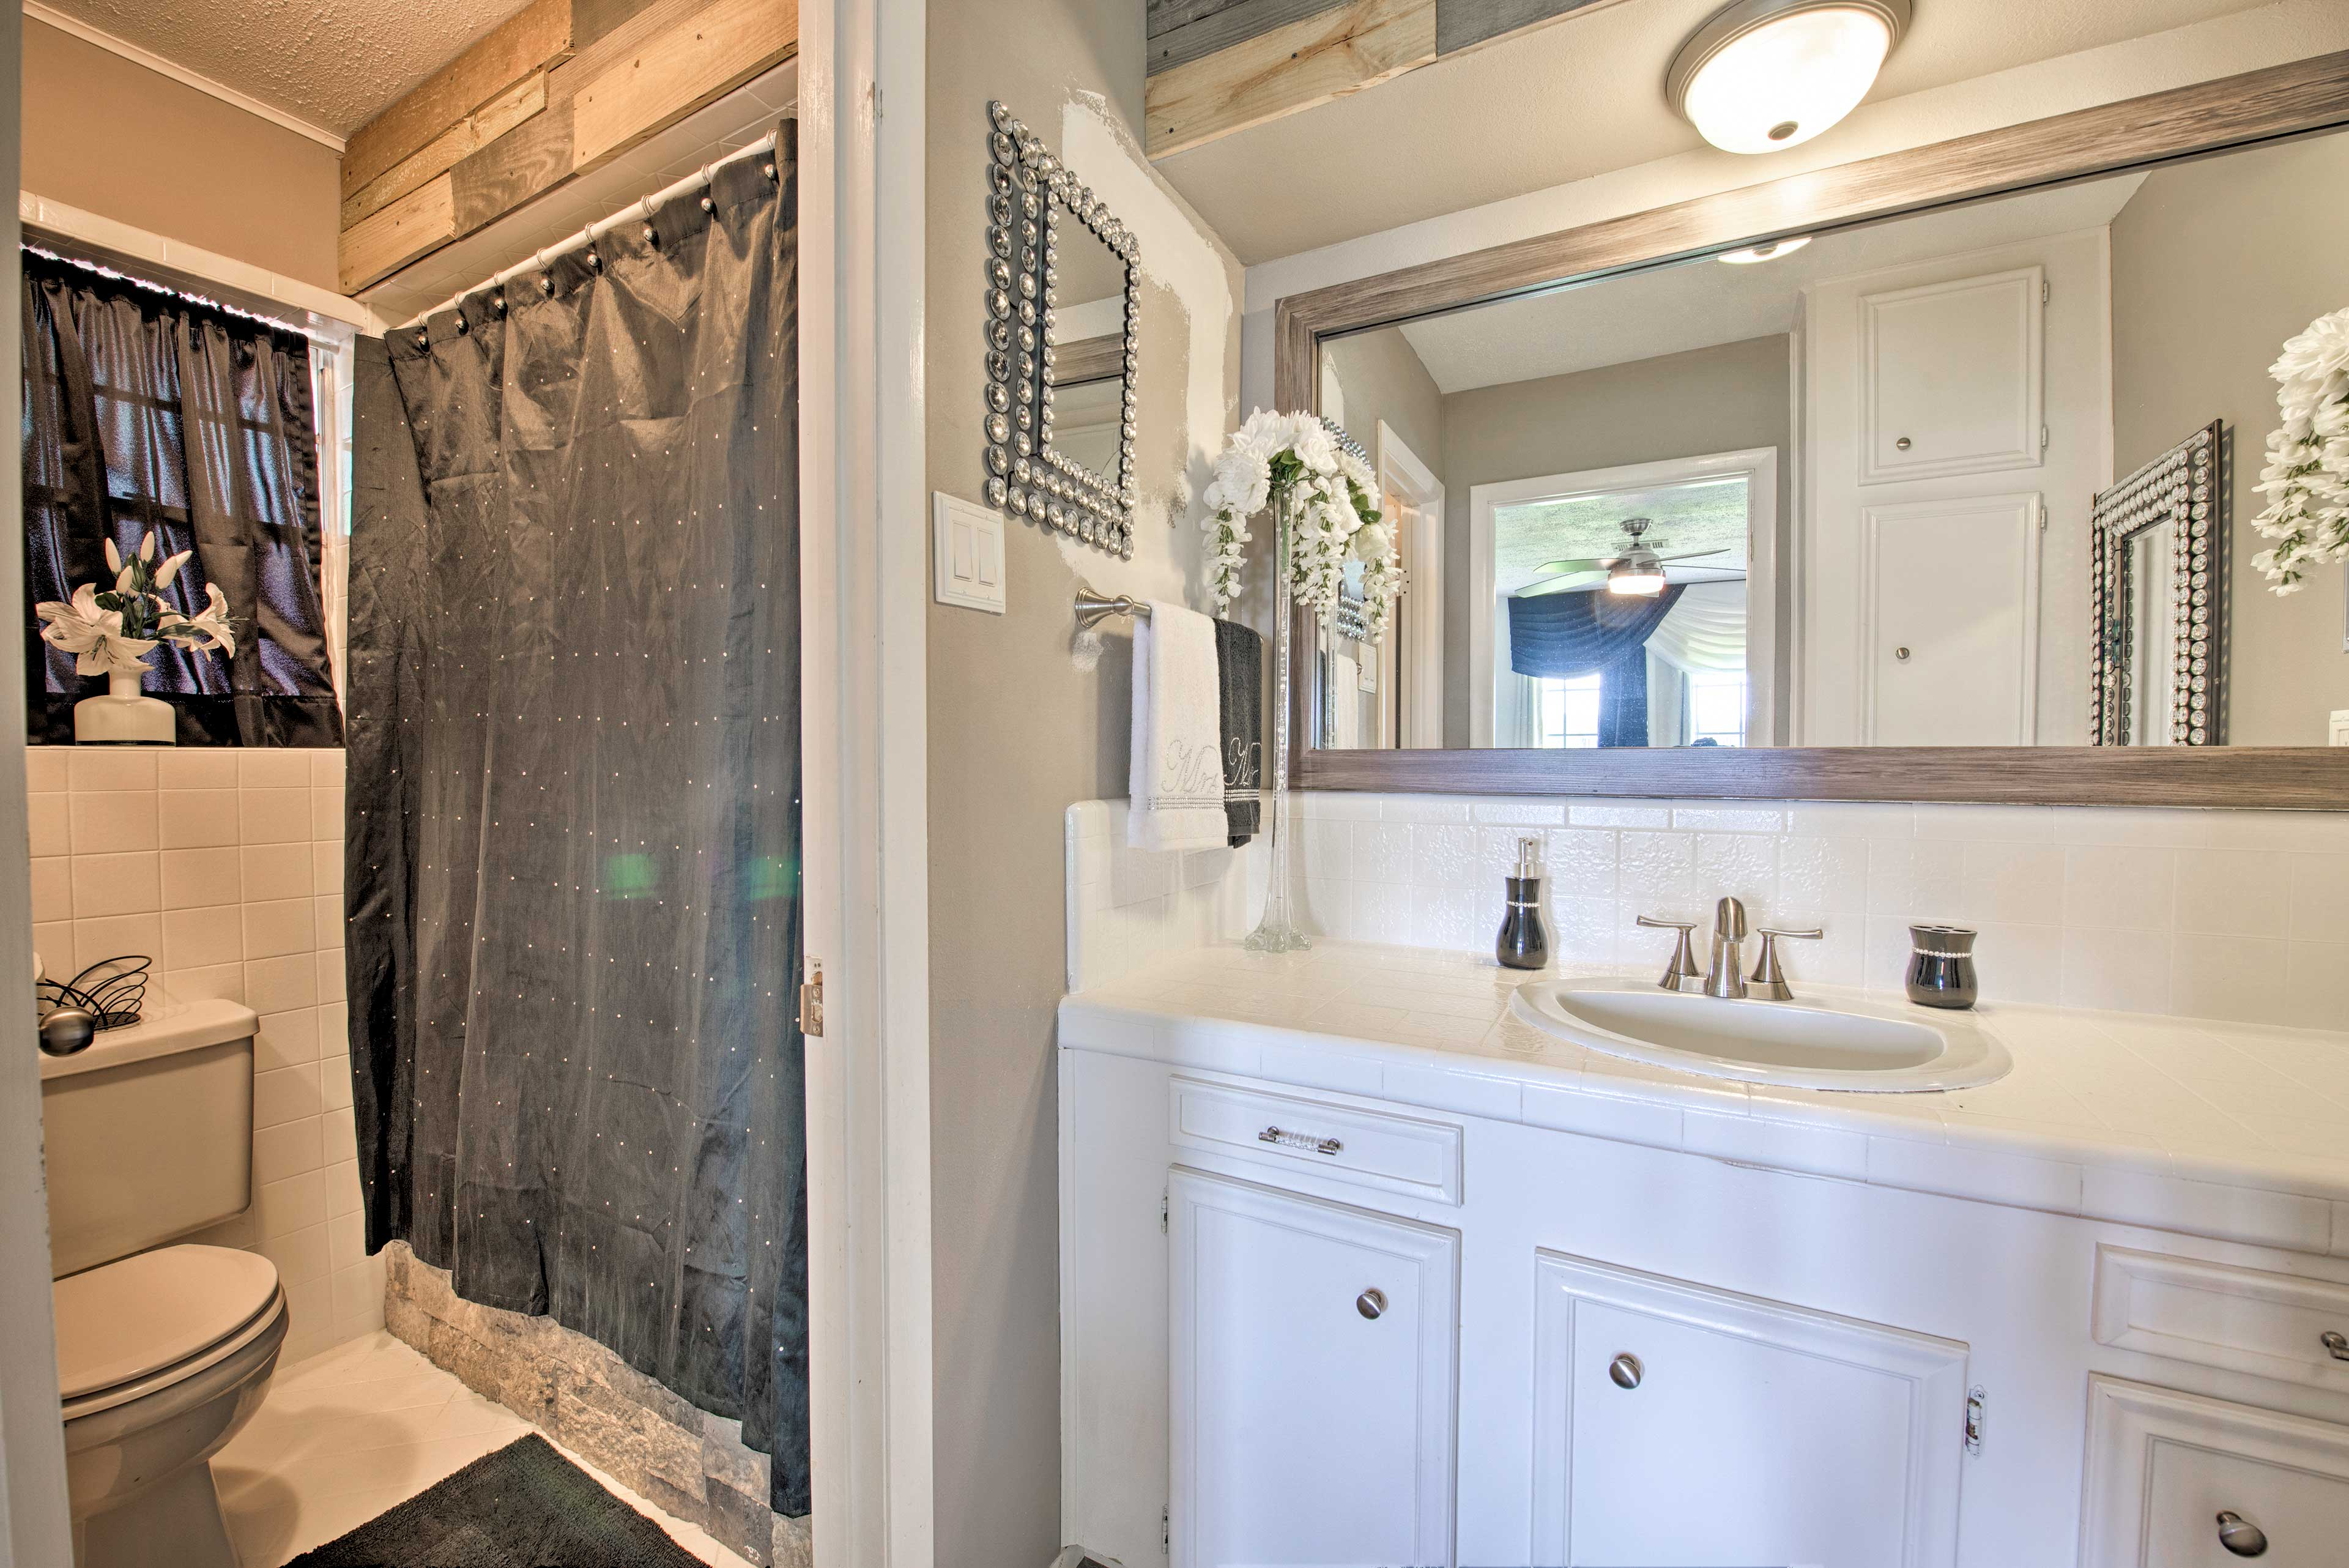 Freshen up in this bathroom before dinner.